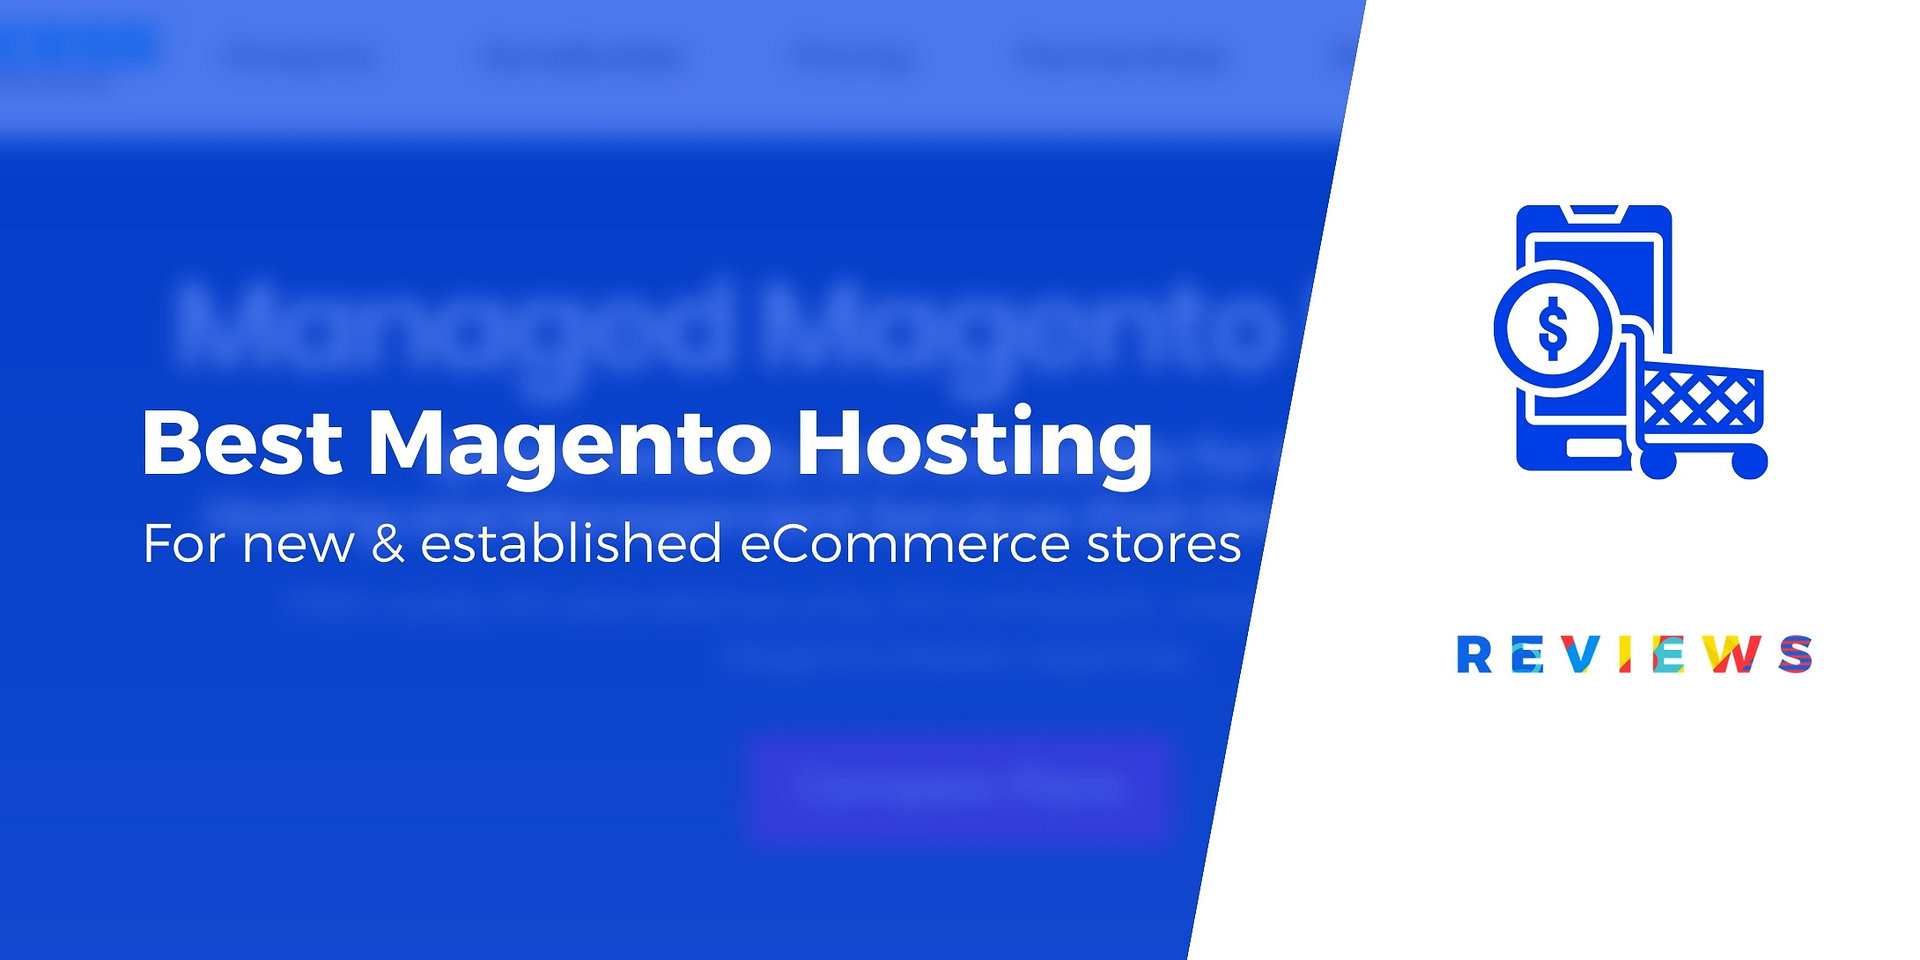 20 Best Magento Hosting Providers Compared From $20.2020/mo